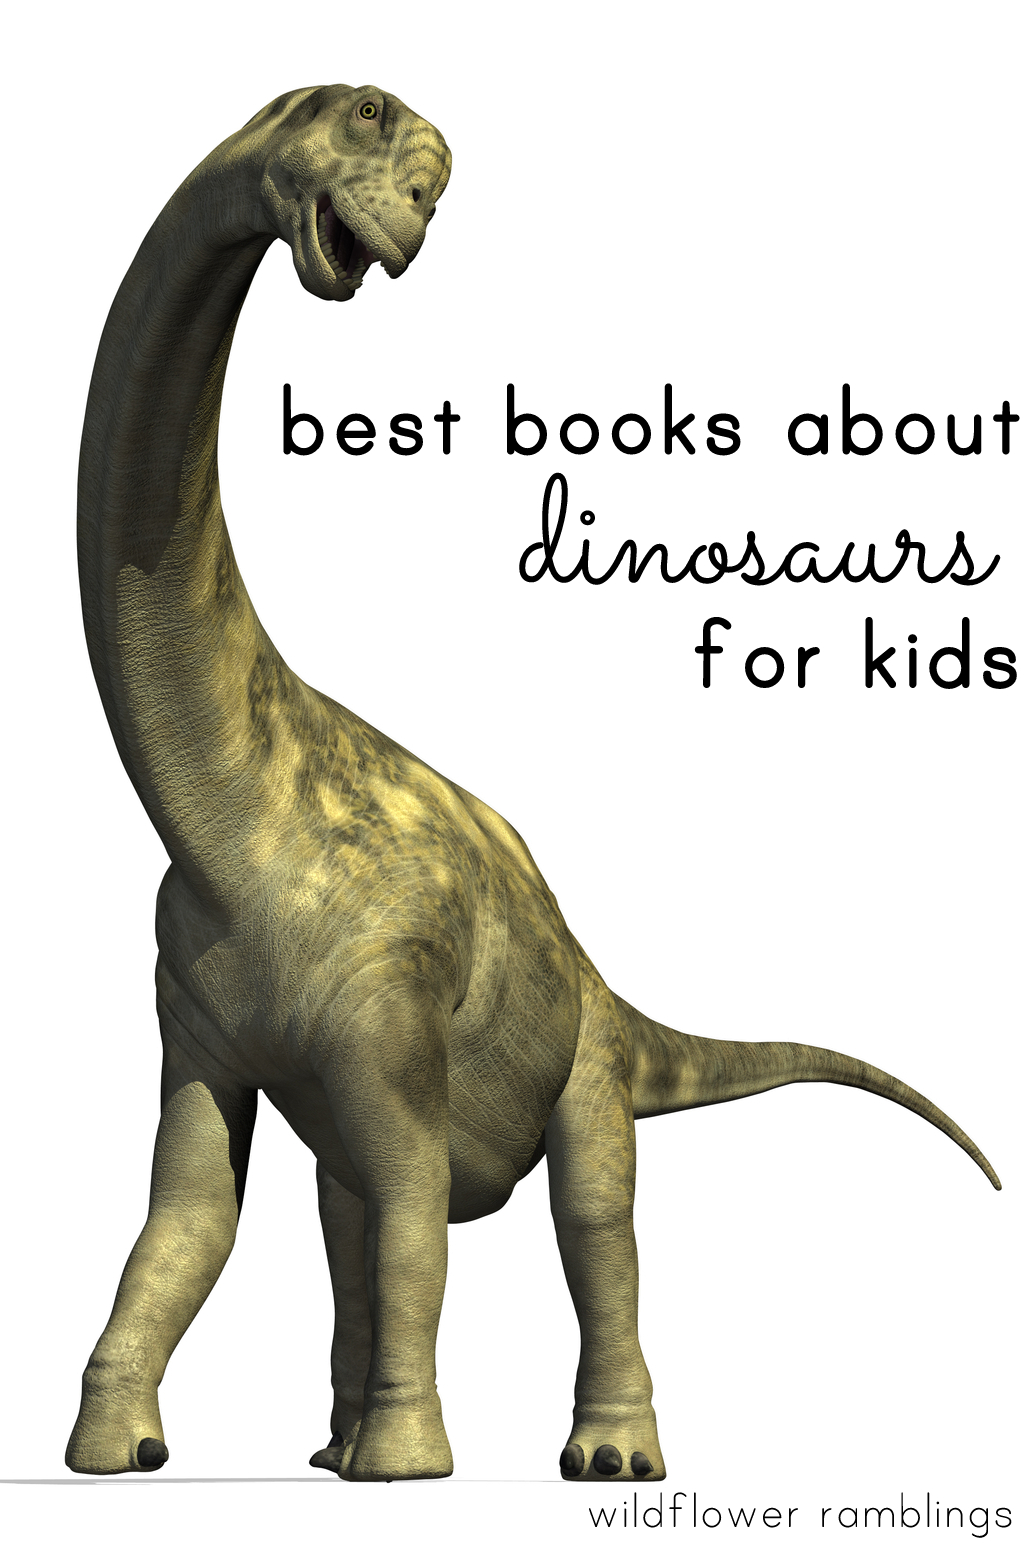 best books about dinosaurs for kids wildflower ramblings